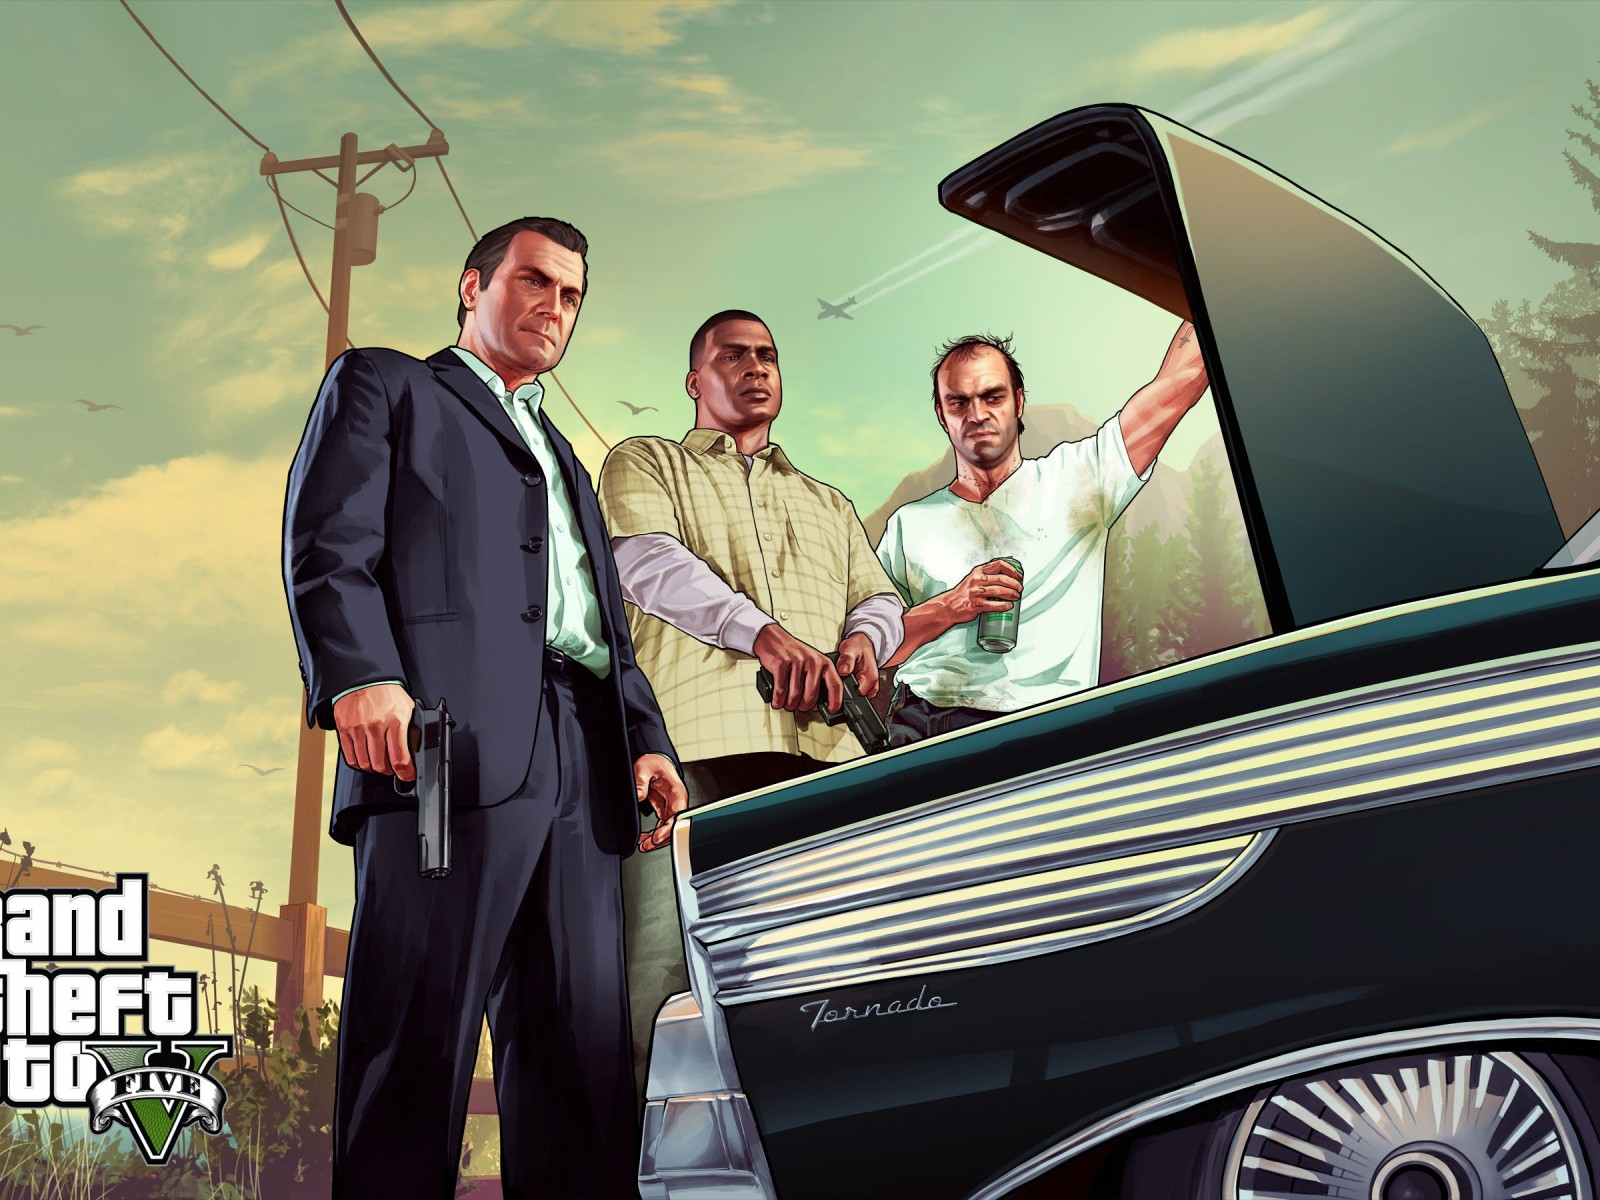 Gta 5 Characters Wallpaper for Desktop 1600x1200